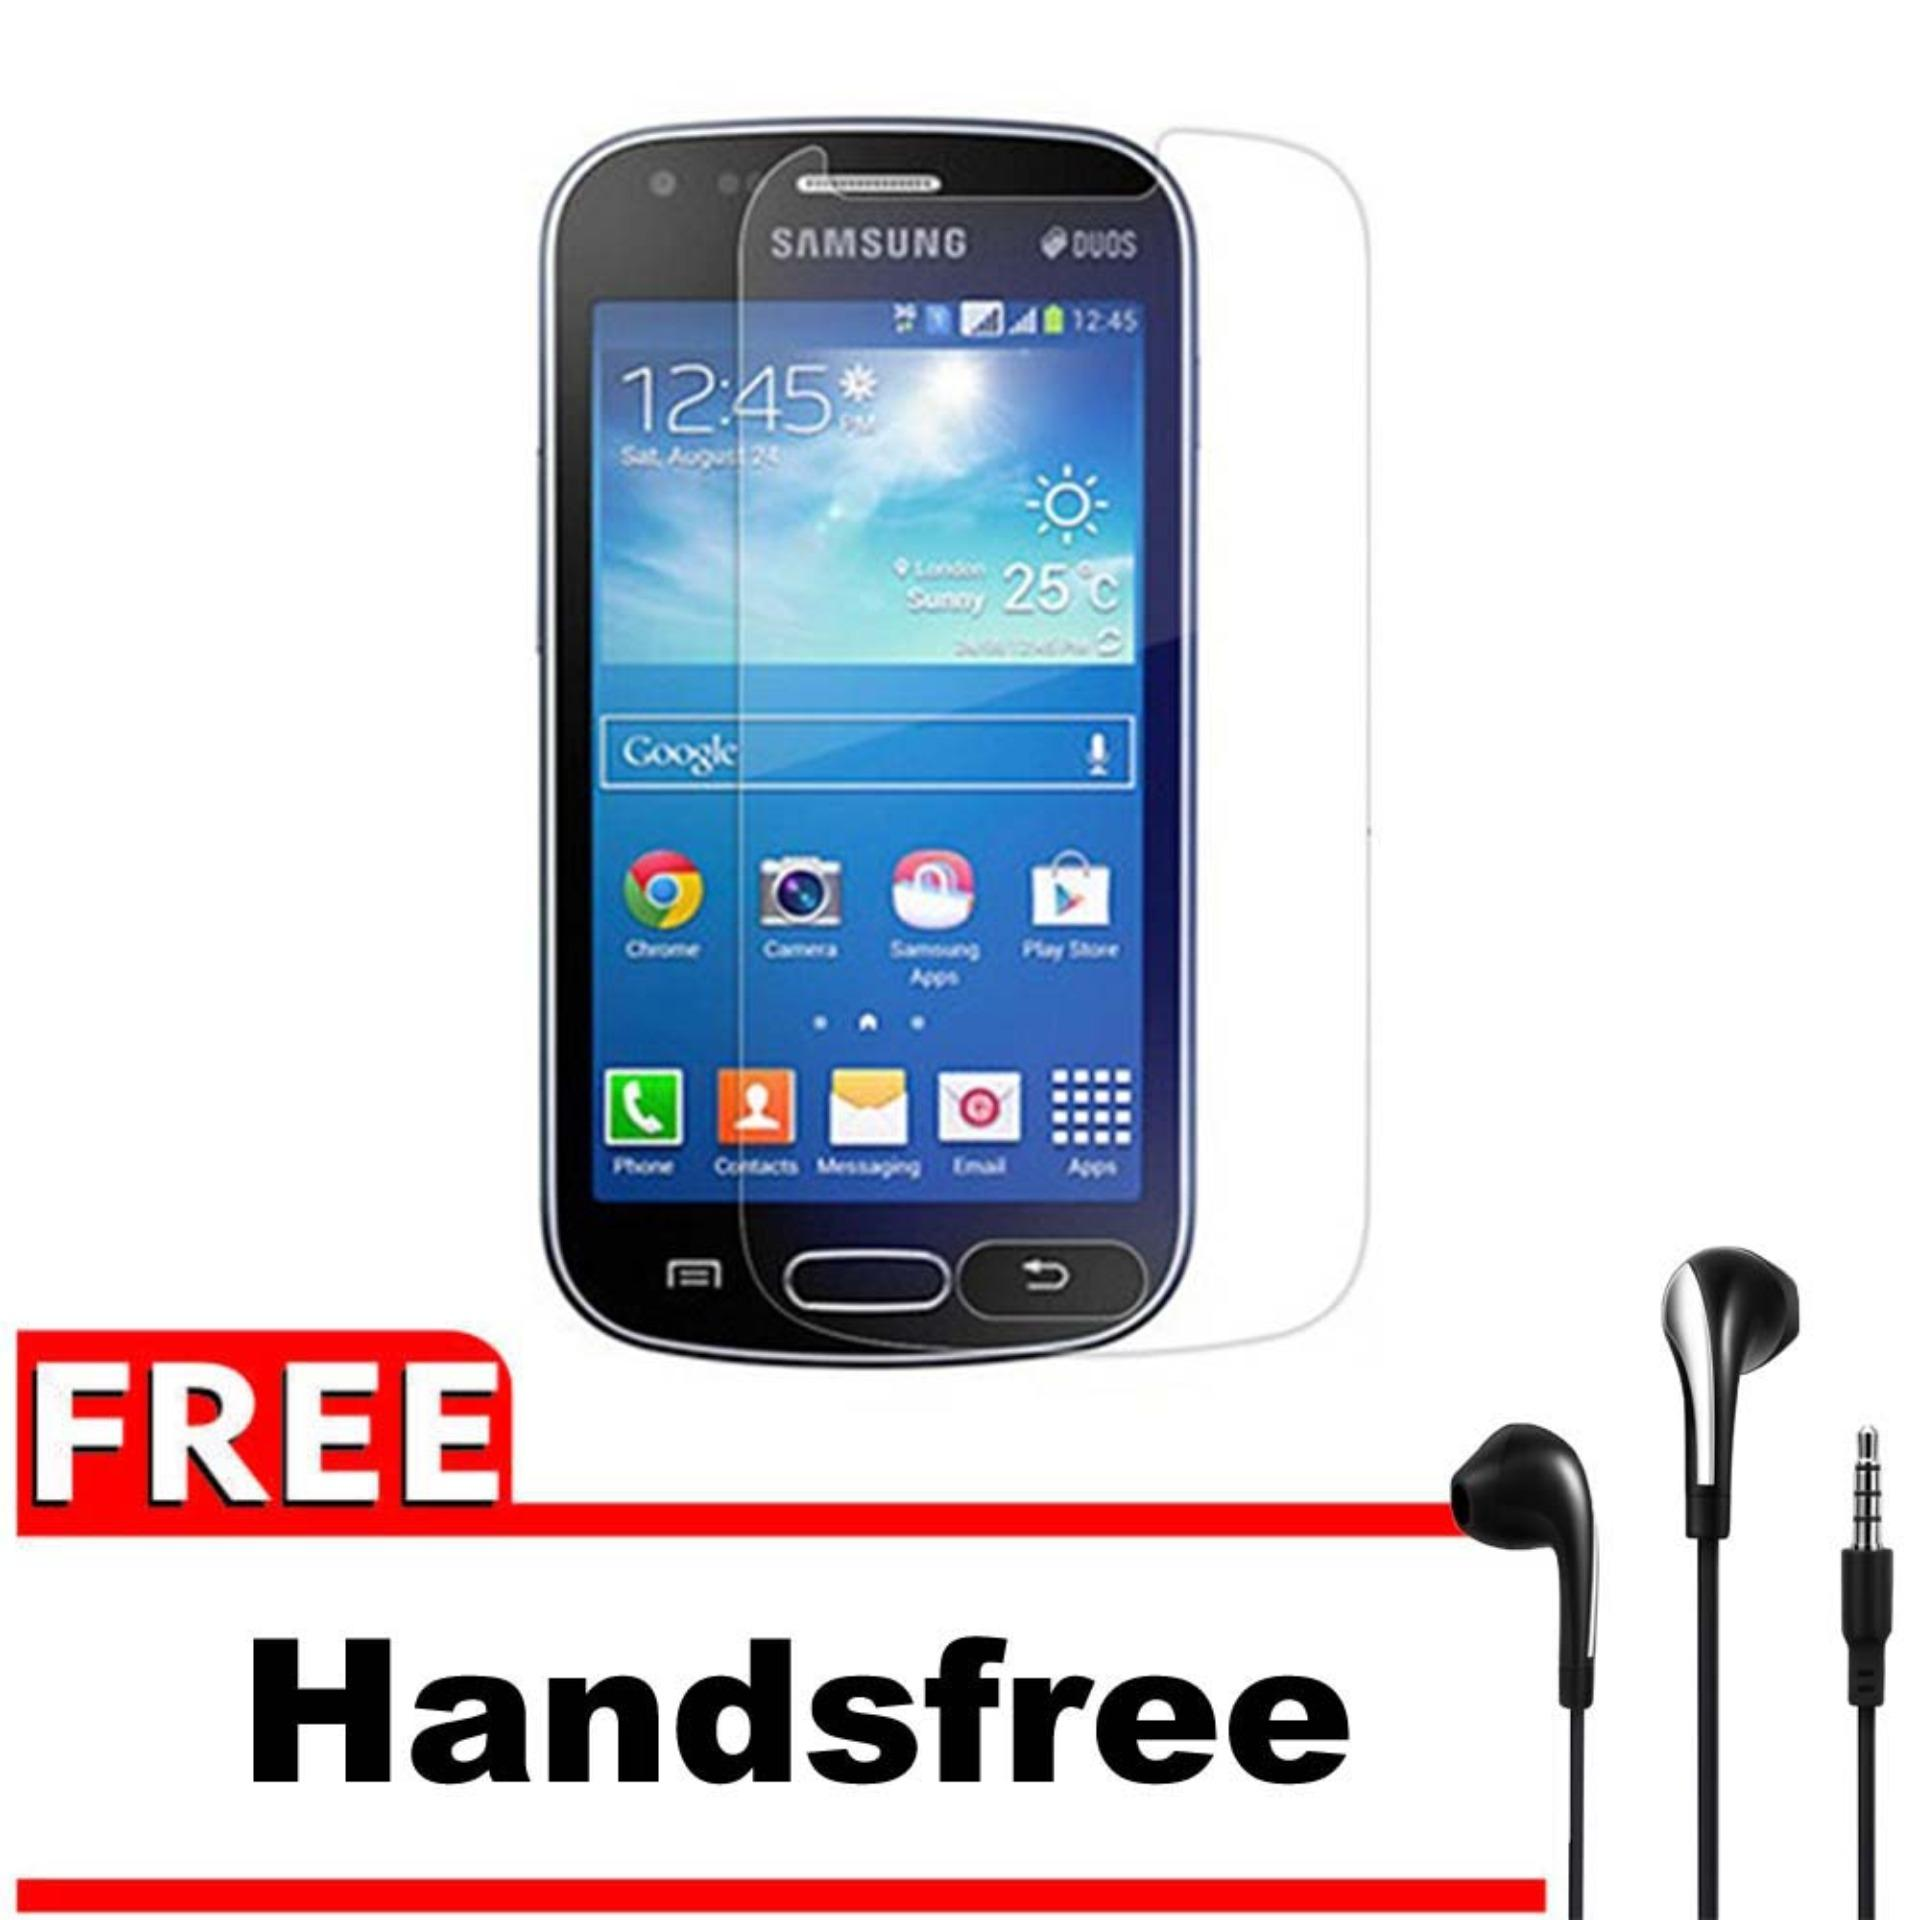 Vn Samsung Galaxy S2 TV / S7273 Tempered Glass 9H Screen Protector 0.32mm + Gratis Free Handsfree Earphone Headset Universal - Bening Transparan